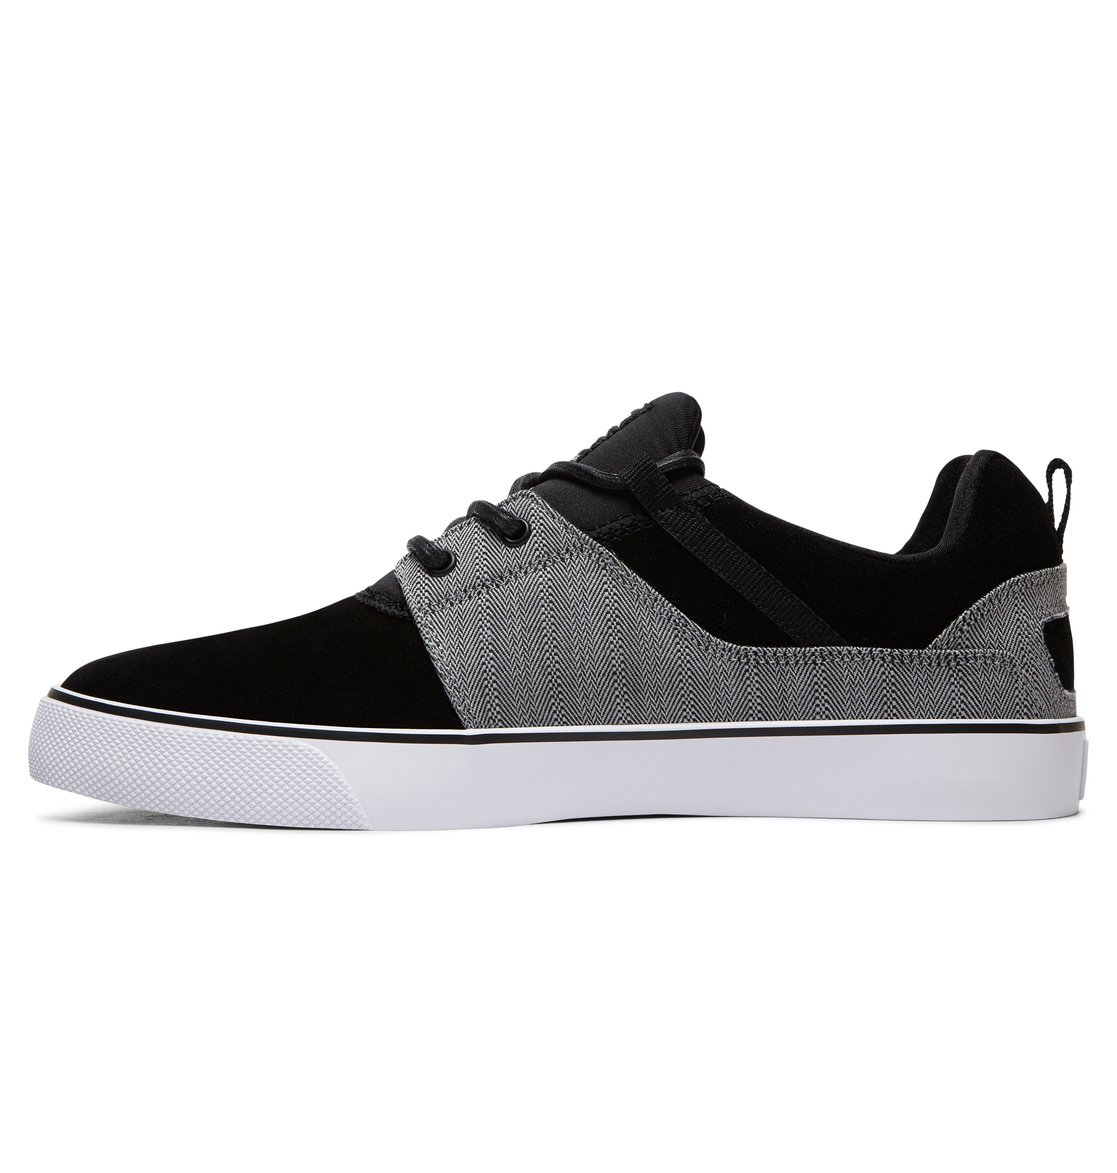 Heathrow Vulc - Baskets - Noir - DC Shoes lUL7UKij7c